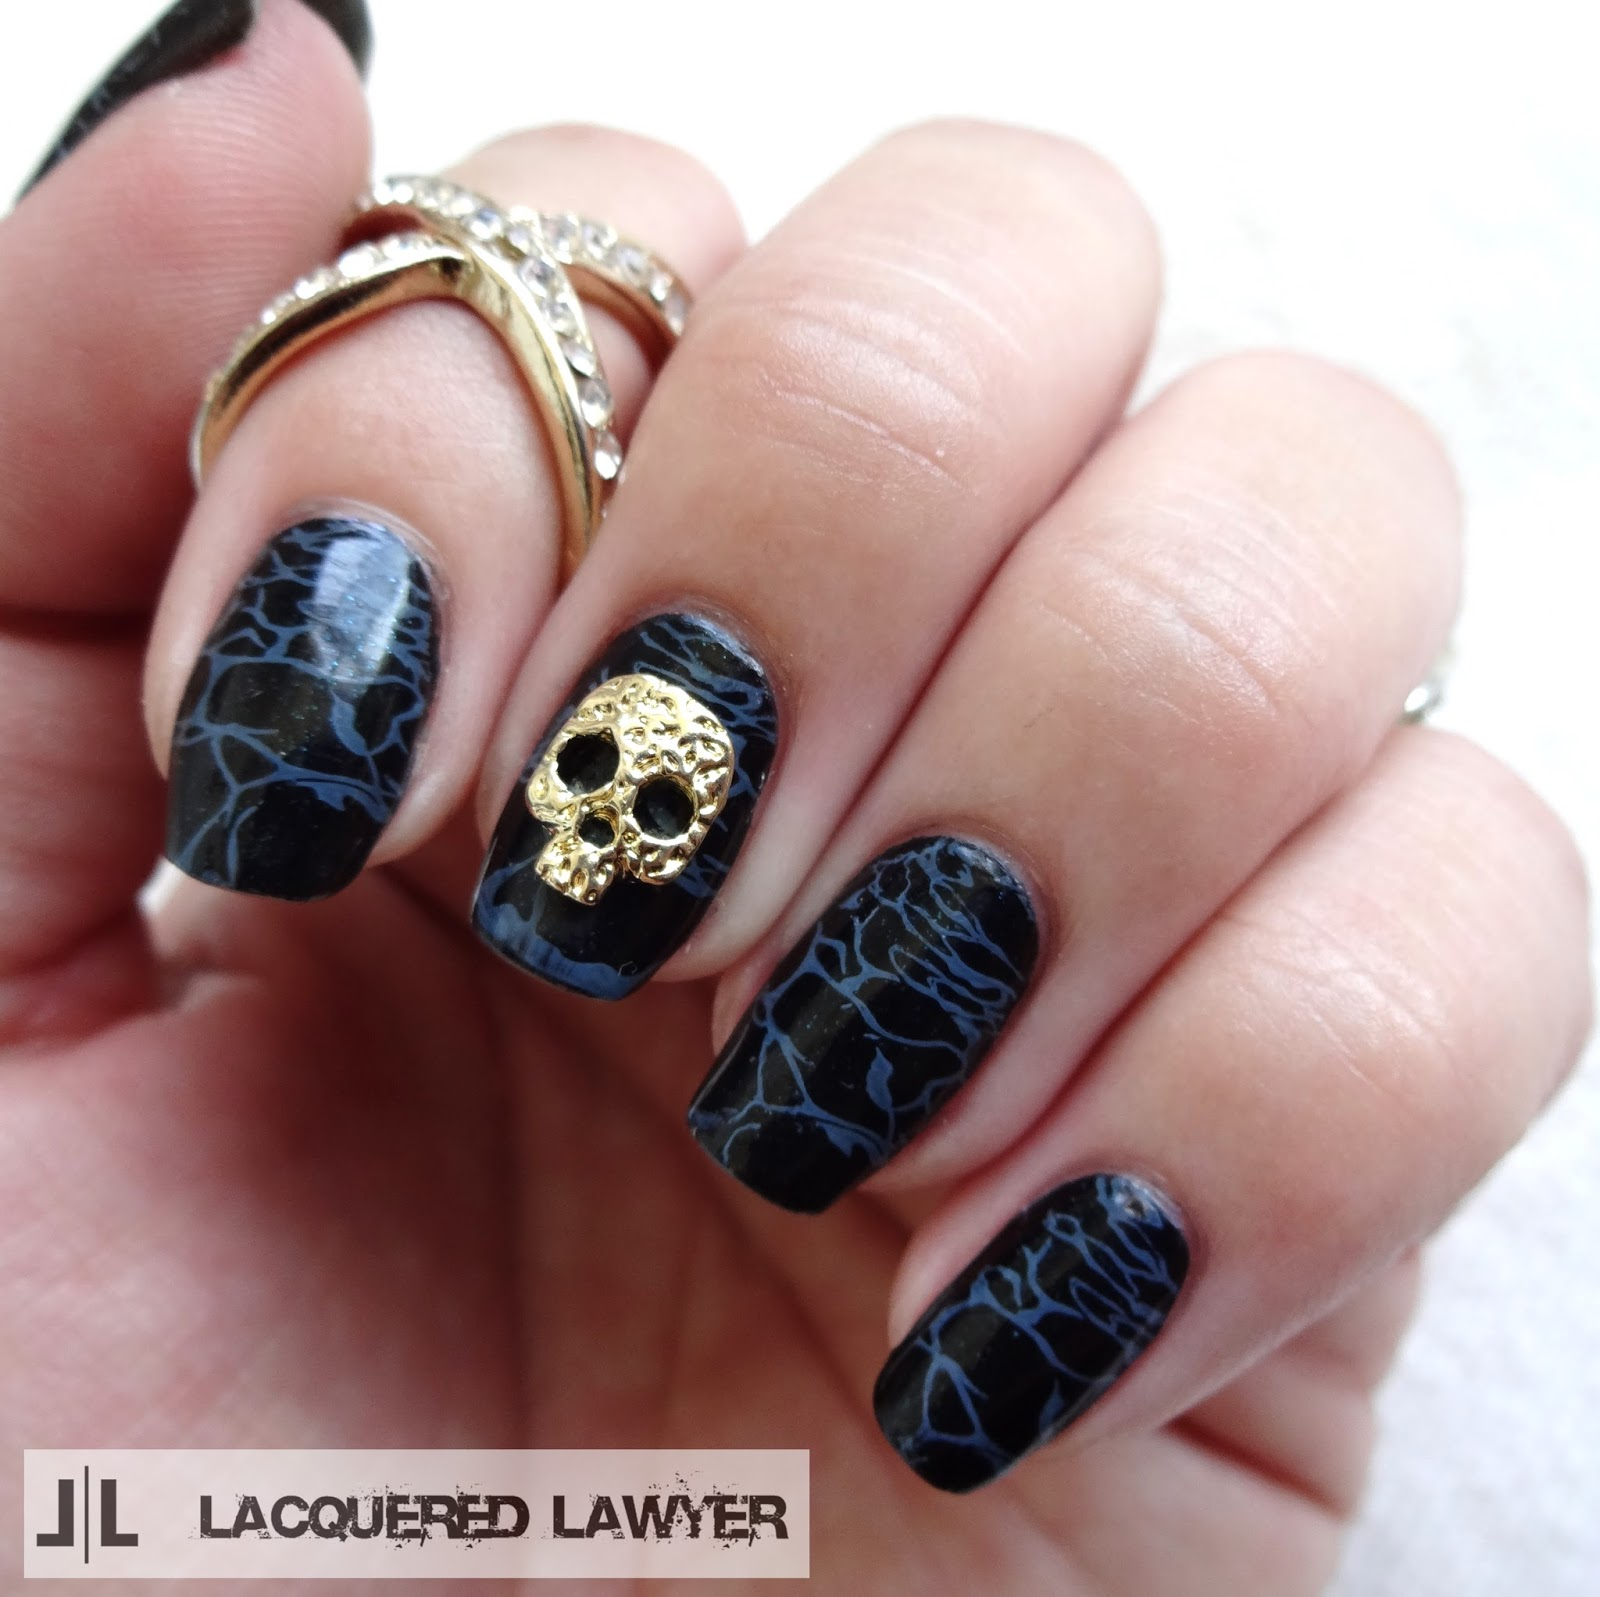 Lacquered Lawyer | Nail Art Blog: Dark Waters